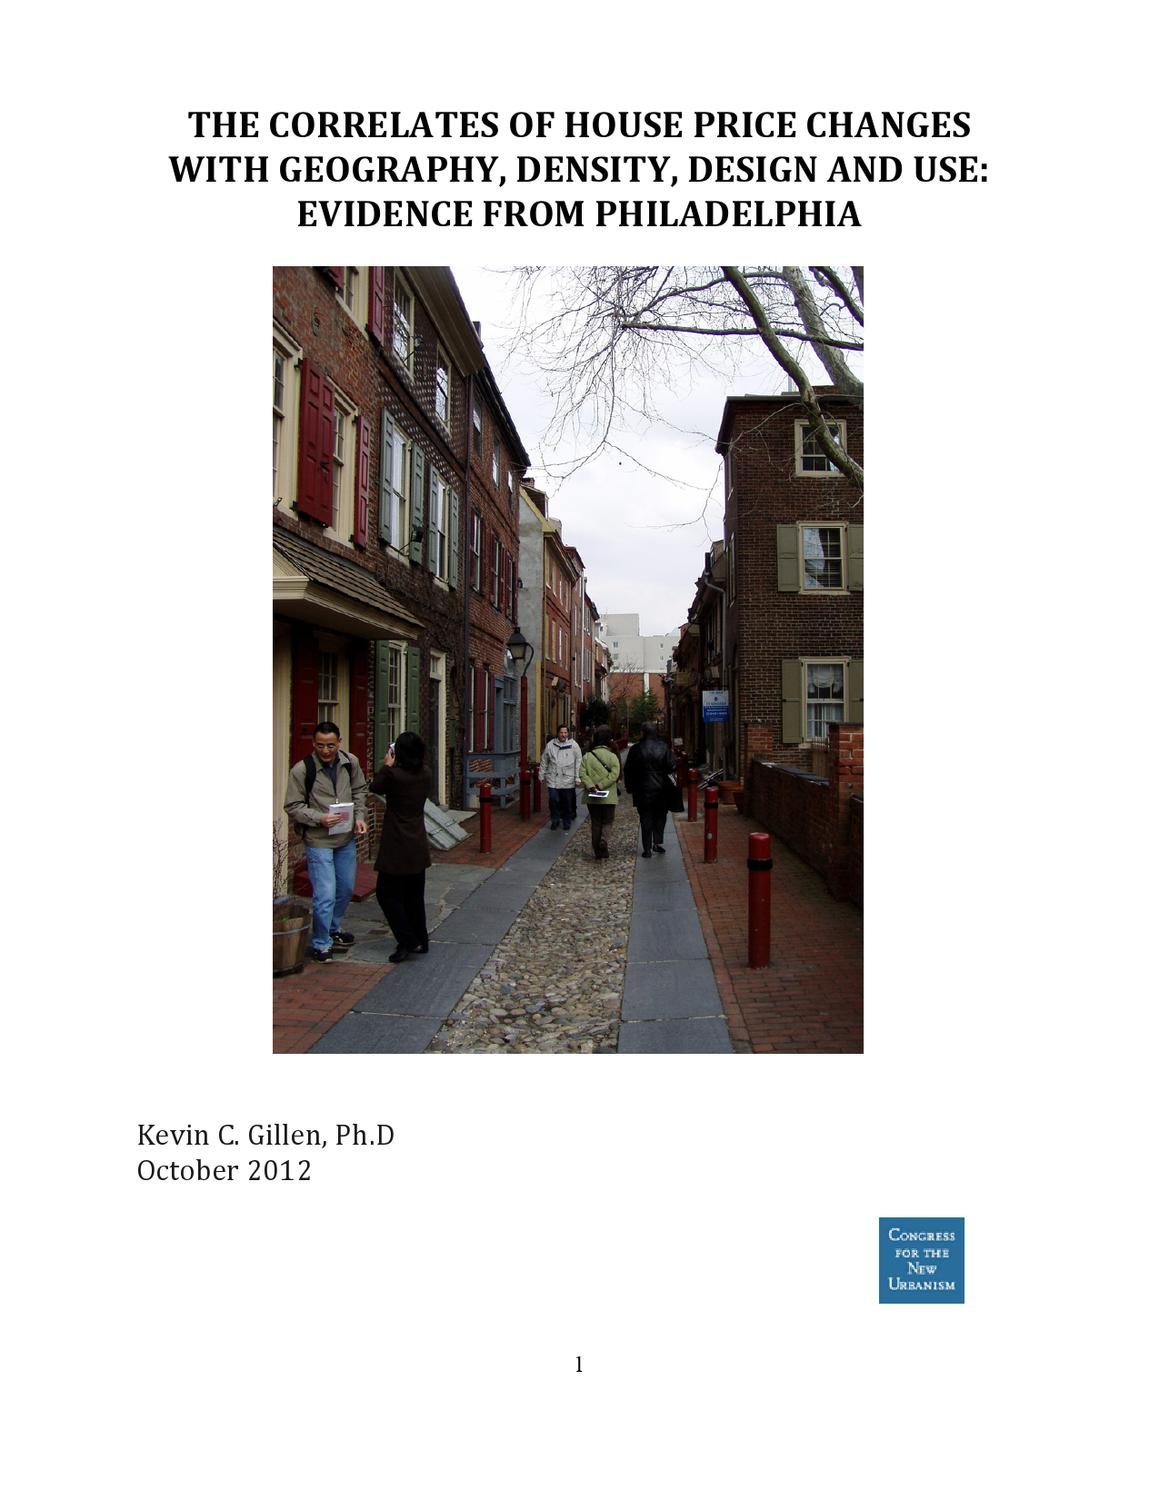 new urbanism research paper The case-study discussed in this report explores these questions  new  urbanism (nu) is a movement in architecture and urban planning that emerged to.